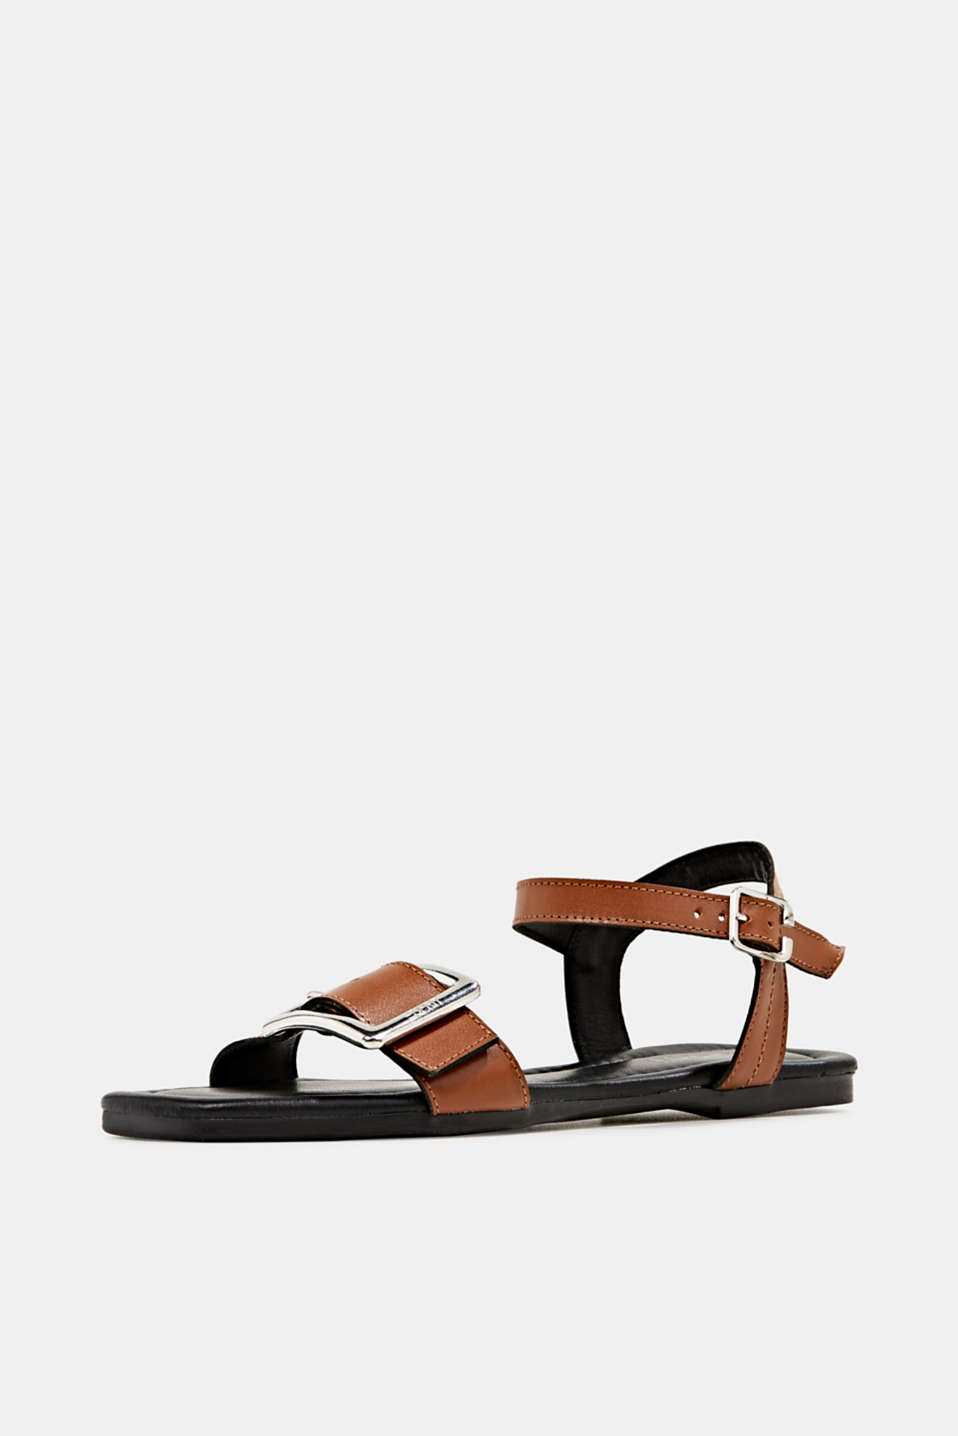 Leather sandals with buckles, CARAMEL, detail image number 2